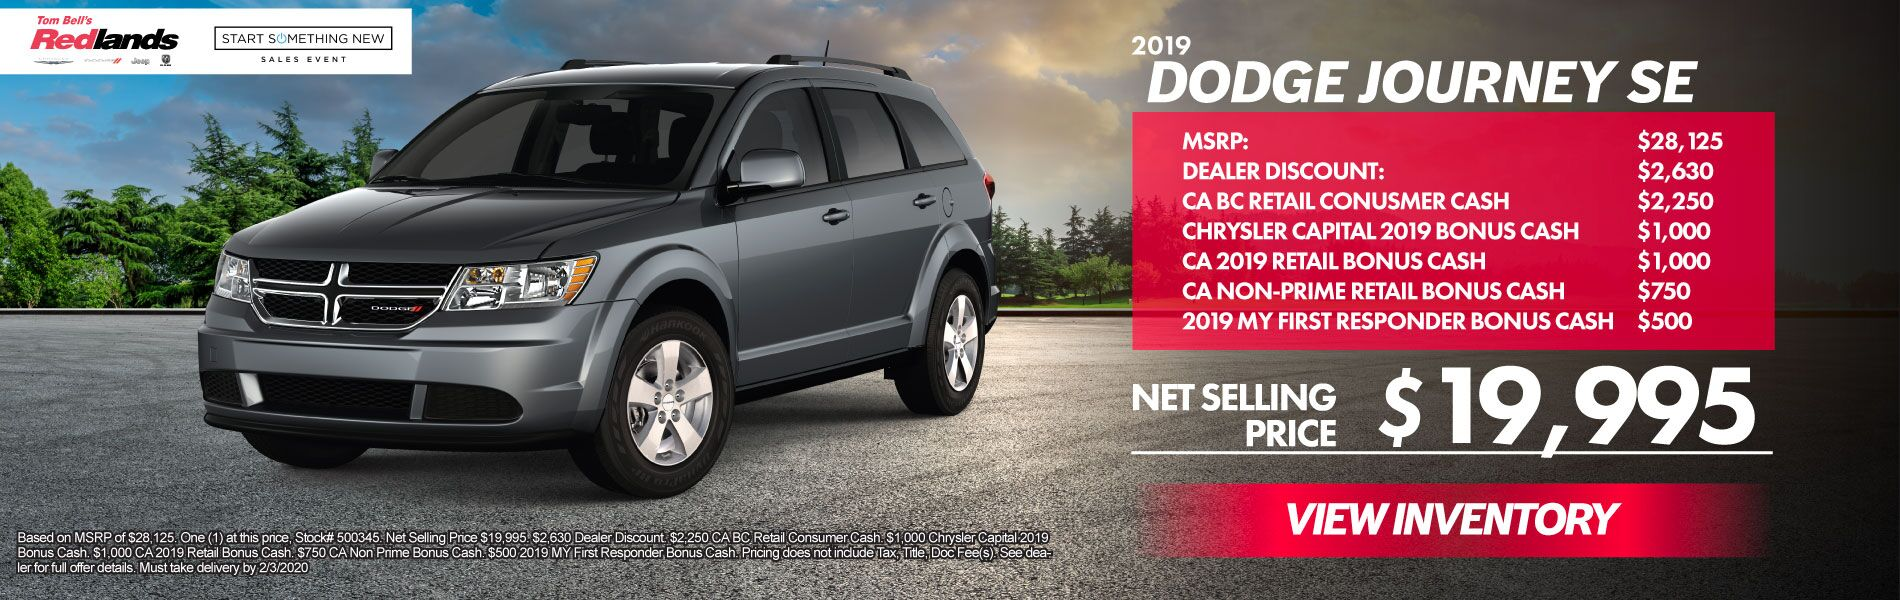 JANUARY SPECIALS - 2019 Dodge Journey